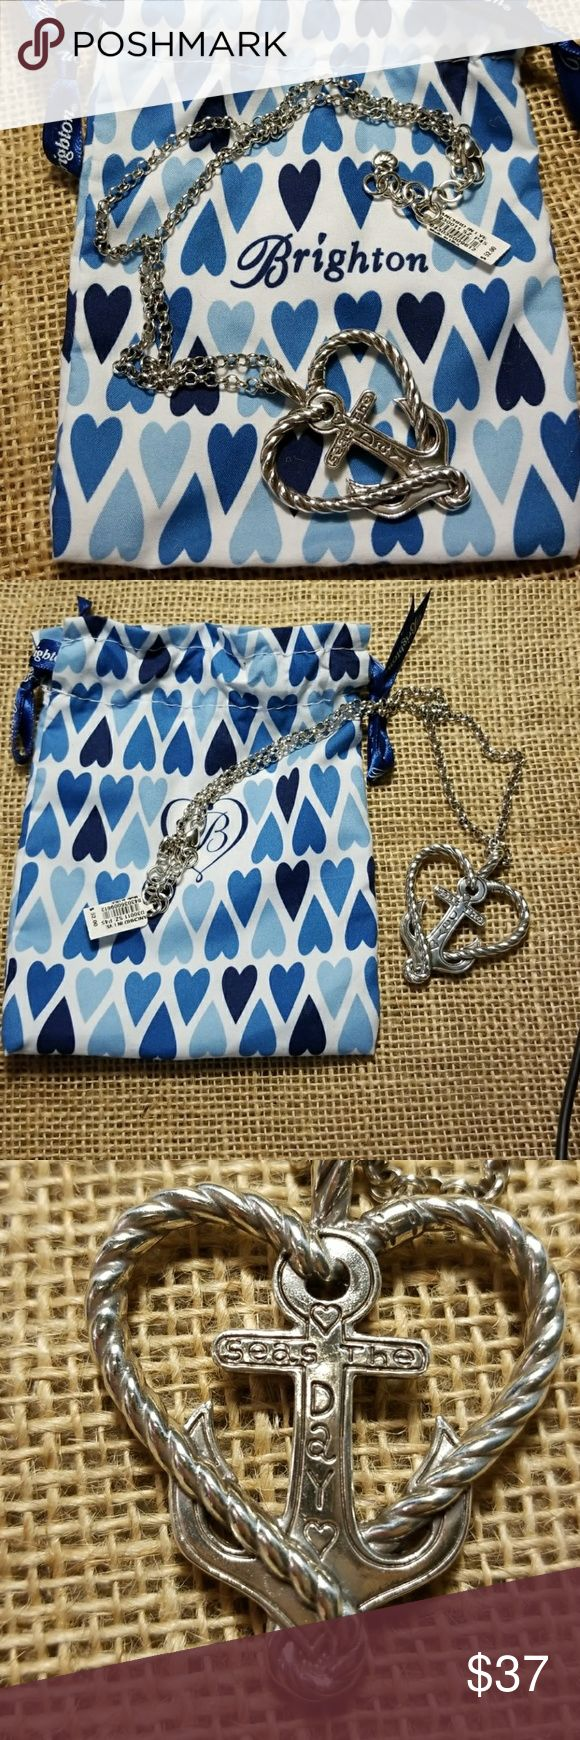 """Sea's the Day"" Brighton necklace Heart charm necklace that says ""sea's the day""   in anchor. Brand new with tags and blue Brighton gift bag. Brand new condition with no issues. Brighton Jewelry Necklaces"